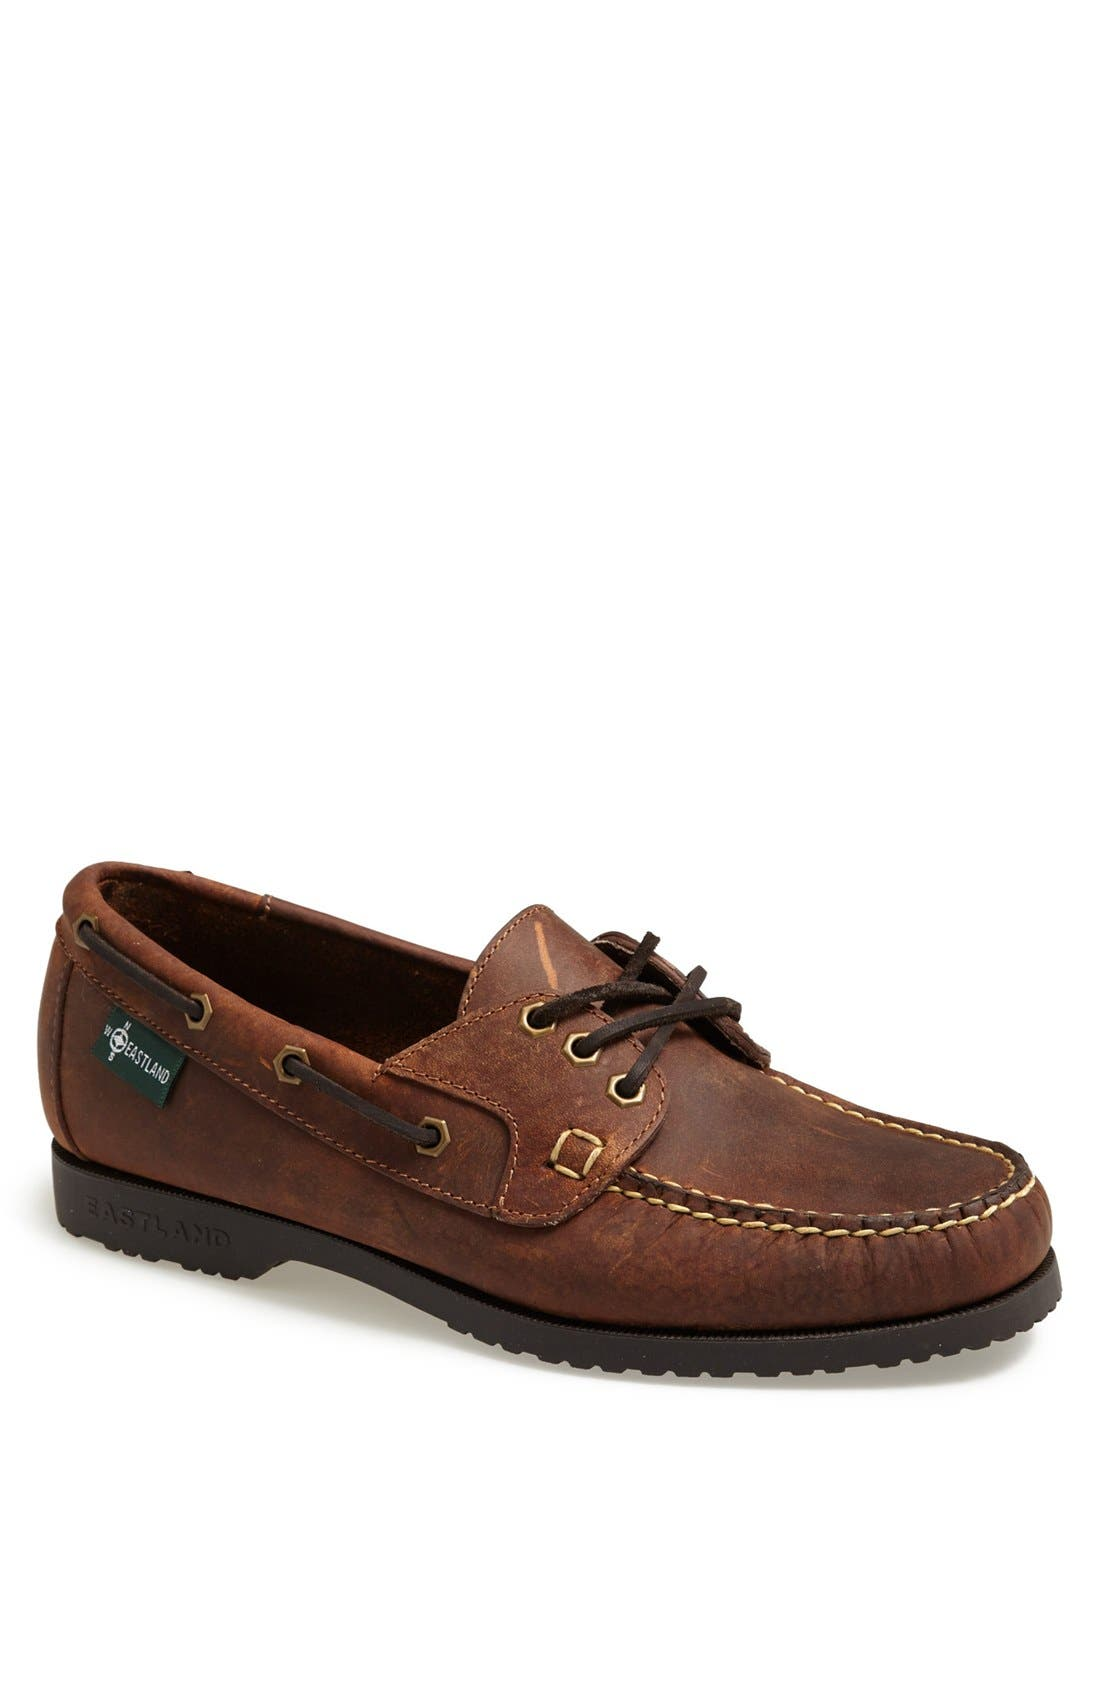 Main Image - Eastland 'Ashland 1955' Boat Shoe